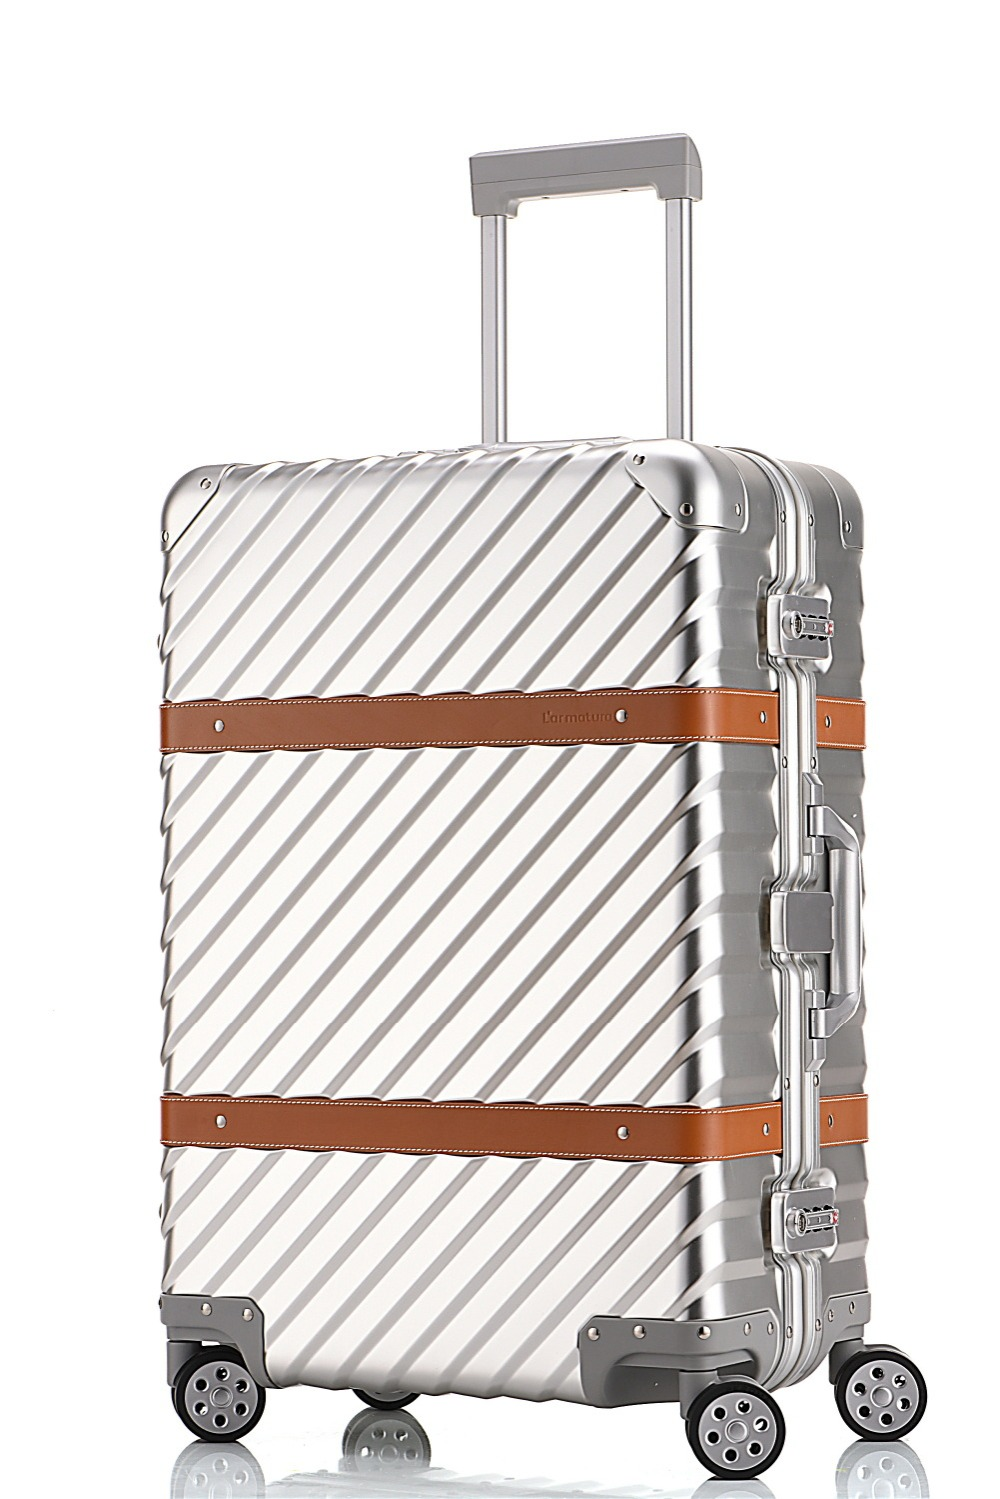 24 inches inclined stripe aluminium magnesium alloy rod box vintage suitcase metal box with leather luggage female board VERRY free shipping 100% aluminium luggage magnesium alloy luggage universal wheel lockbox metal box men and women on board boxes